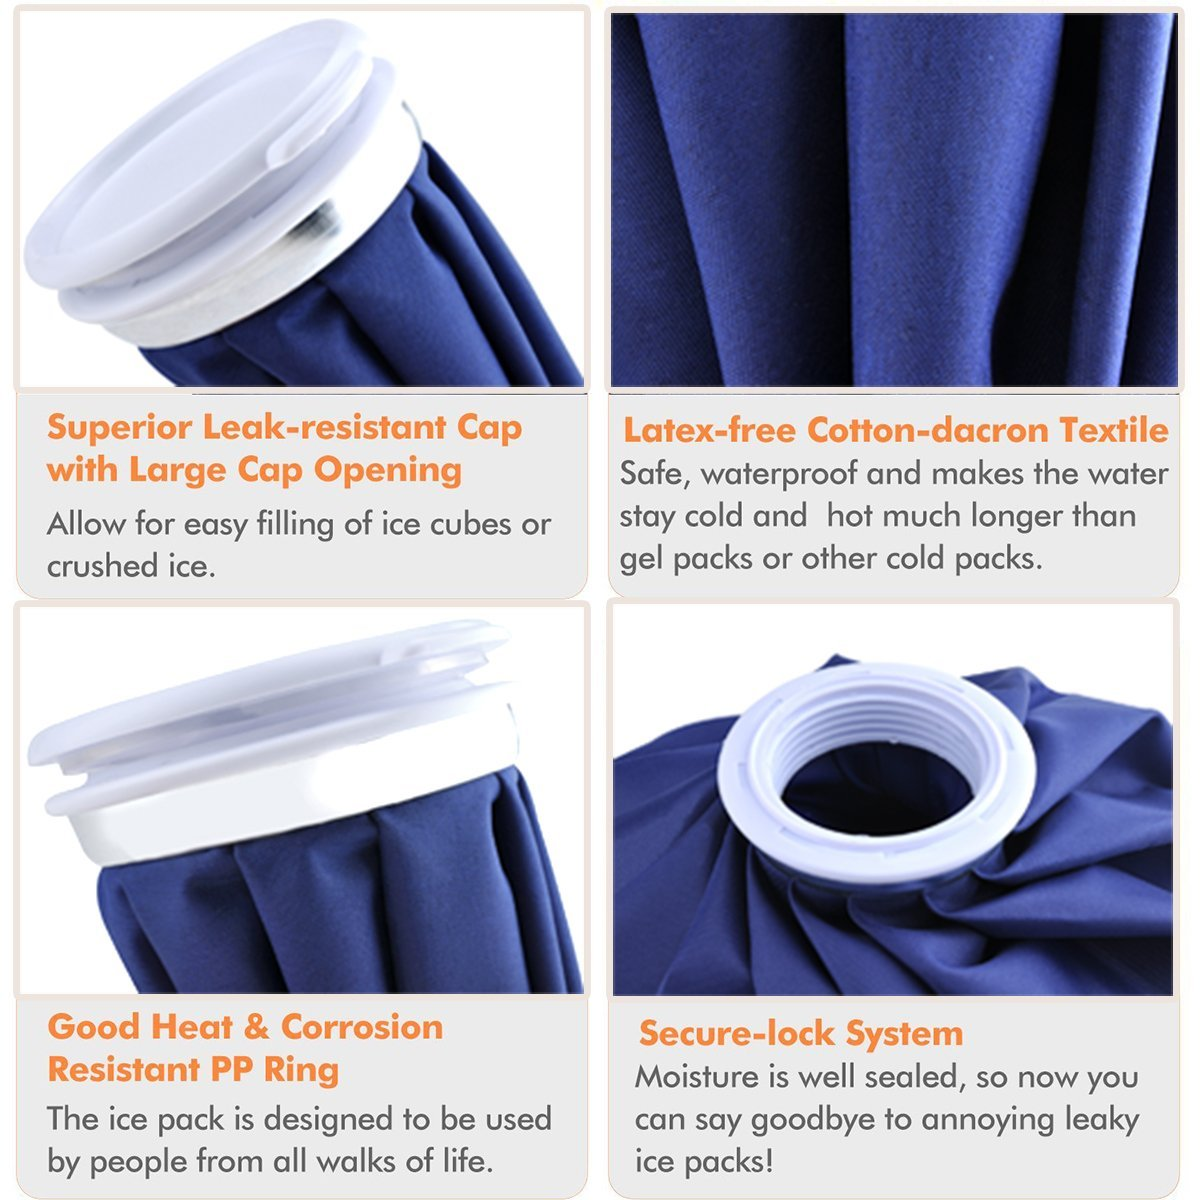 Reusable Ice Bag Hot Cold Therapy Pain Relief Injury First Aid Pack Blue